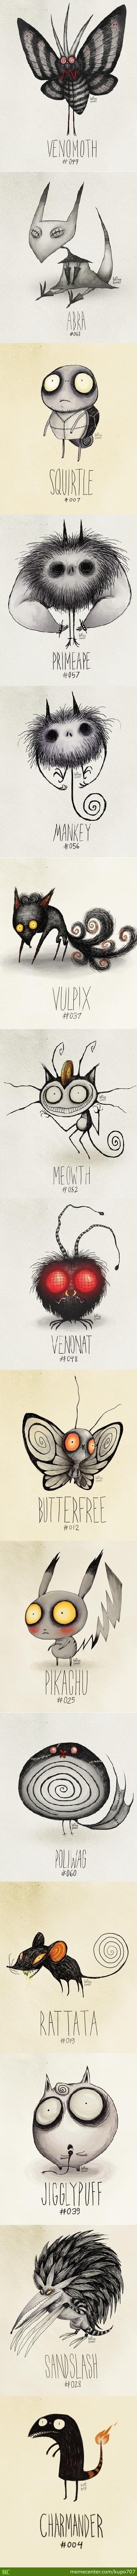 Tim Burton Inspired Pokemon Drawings